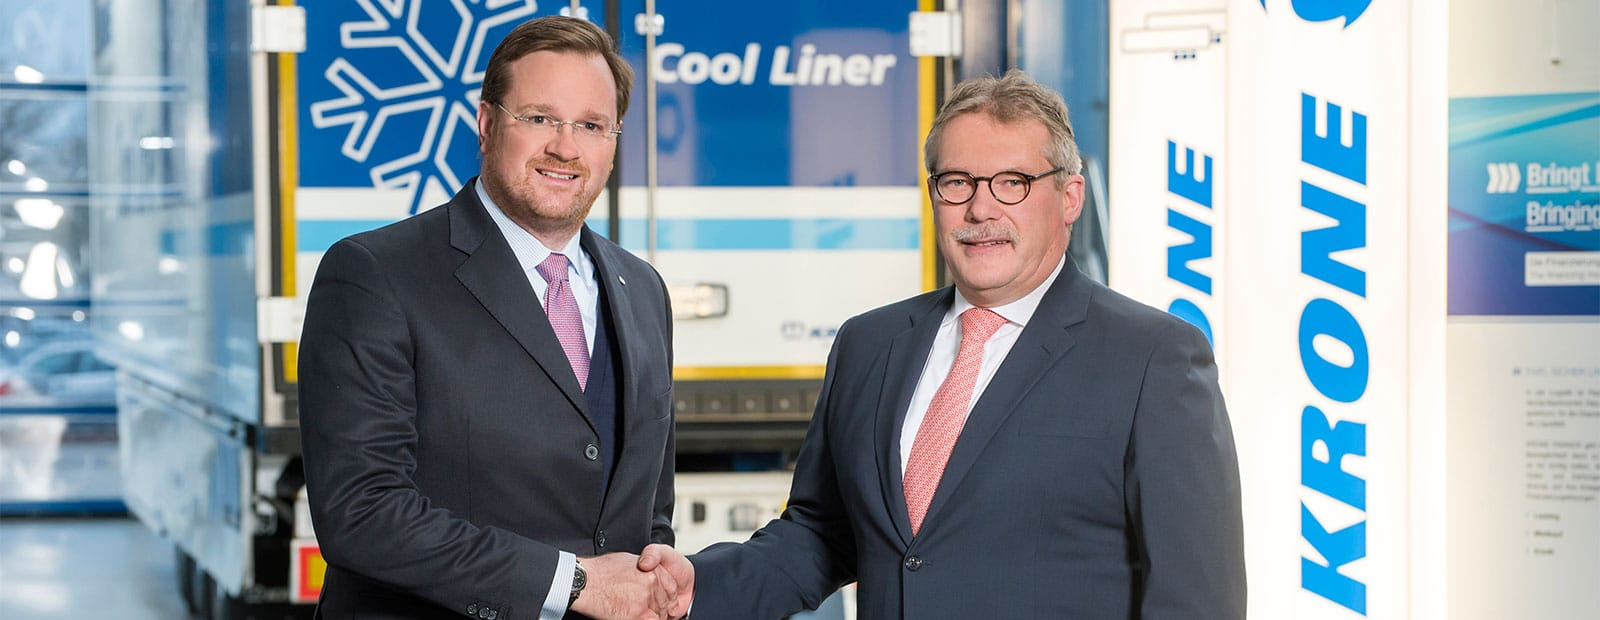 Trailer marriage in Emsland: Krone and Brüggen merge to become KRONE Commercial Vehicle SE